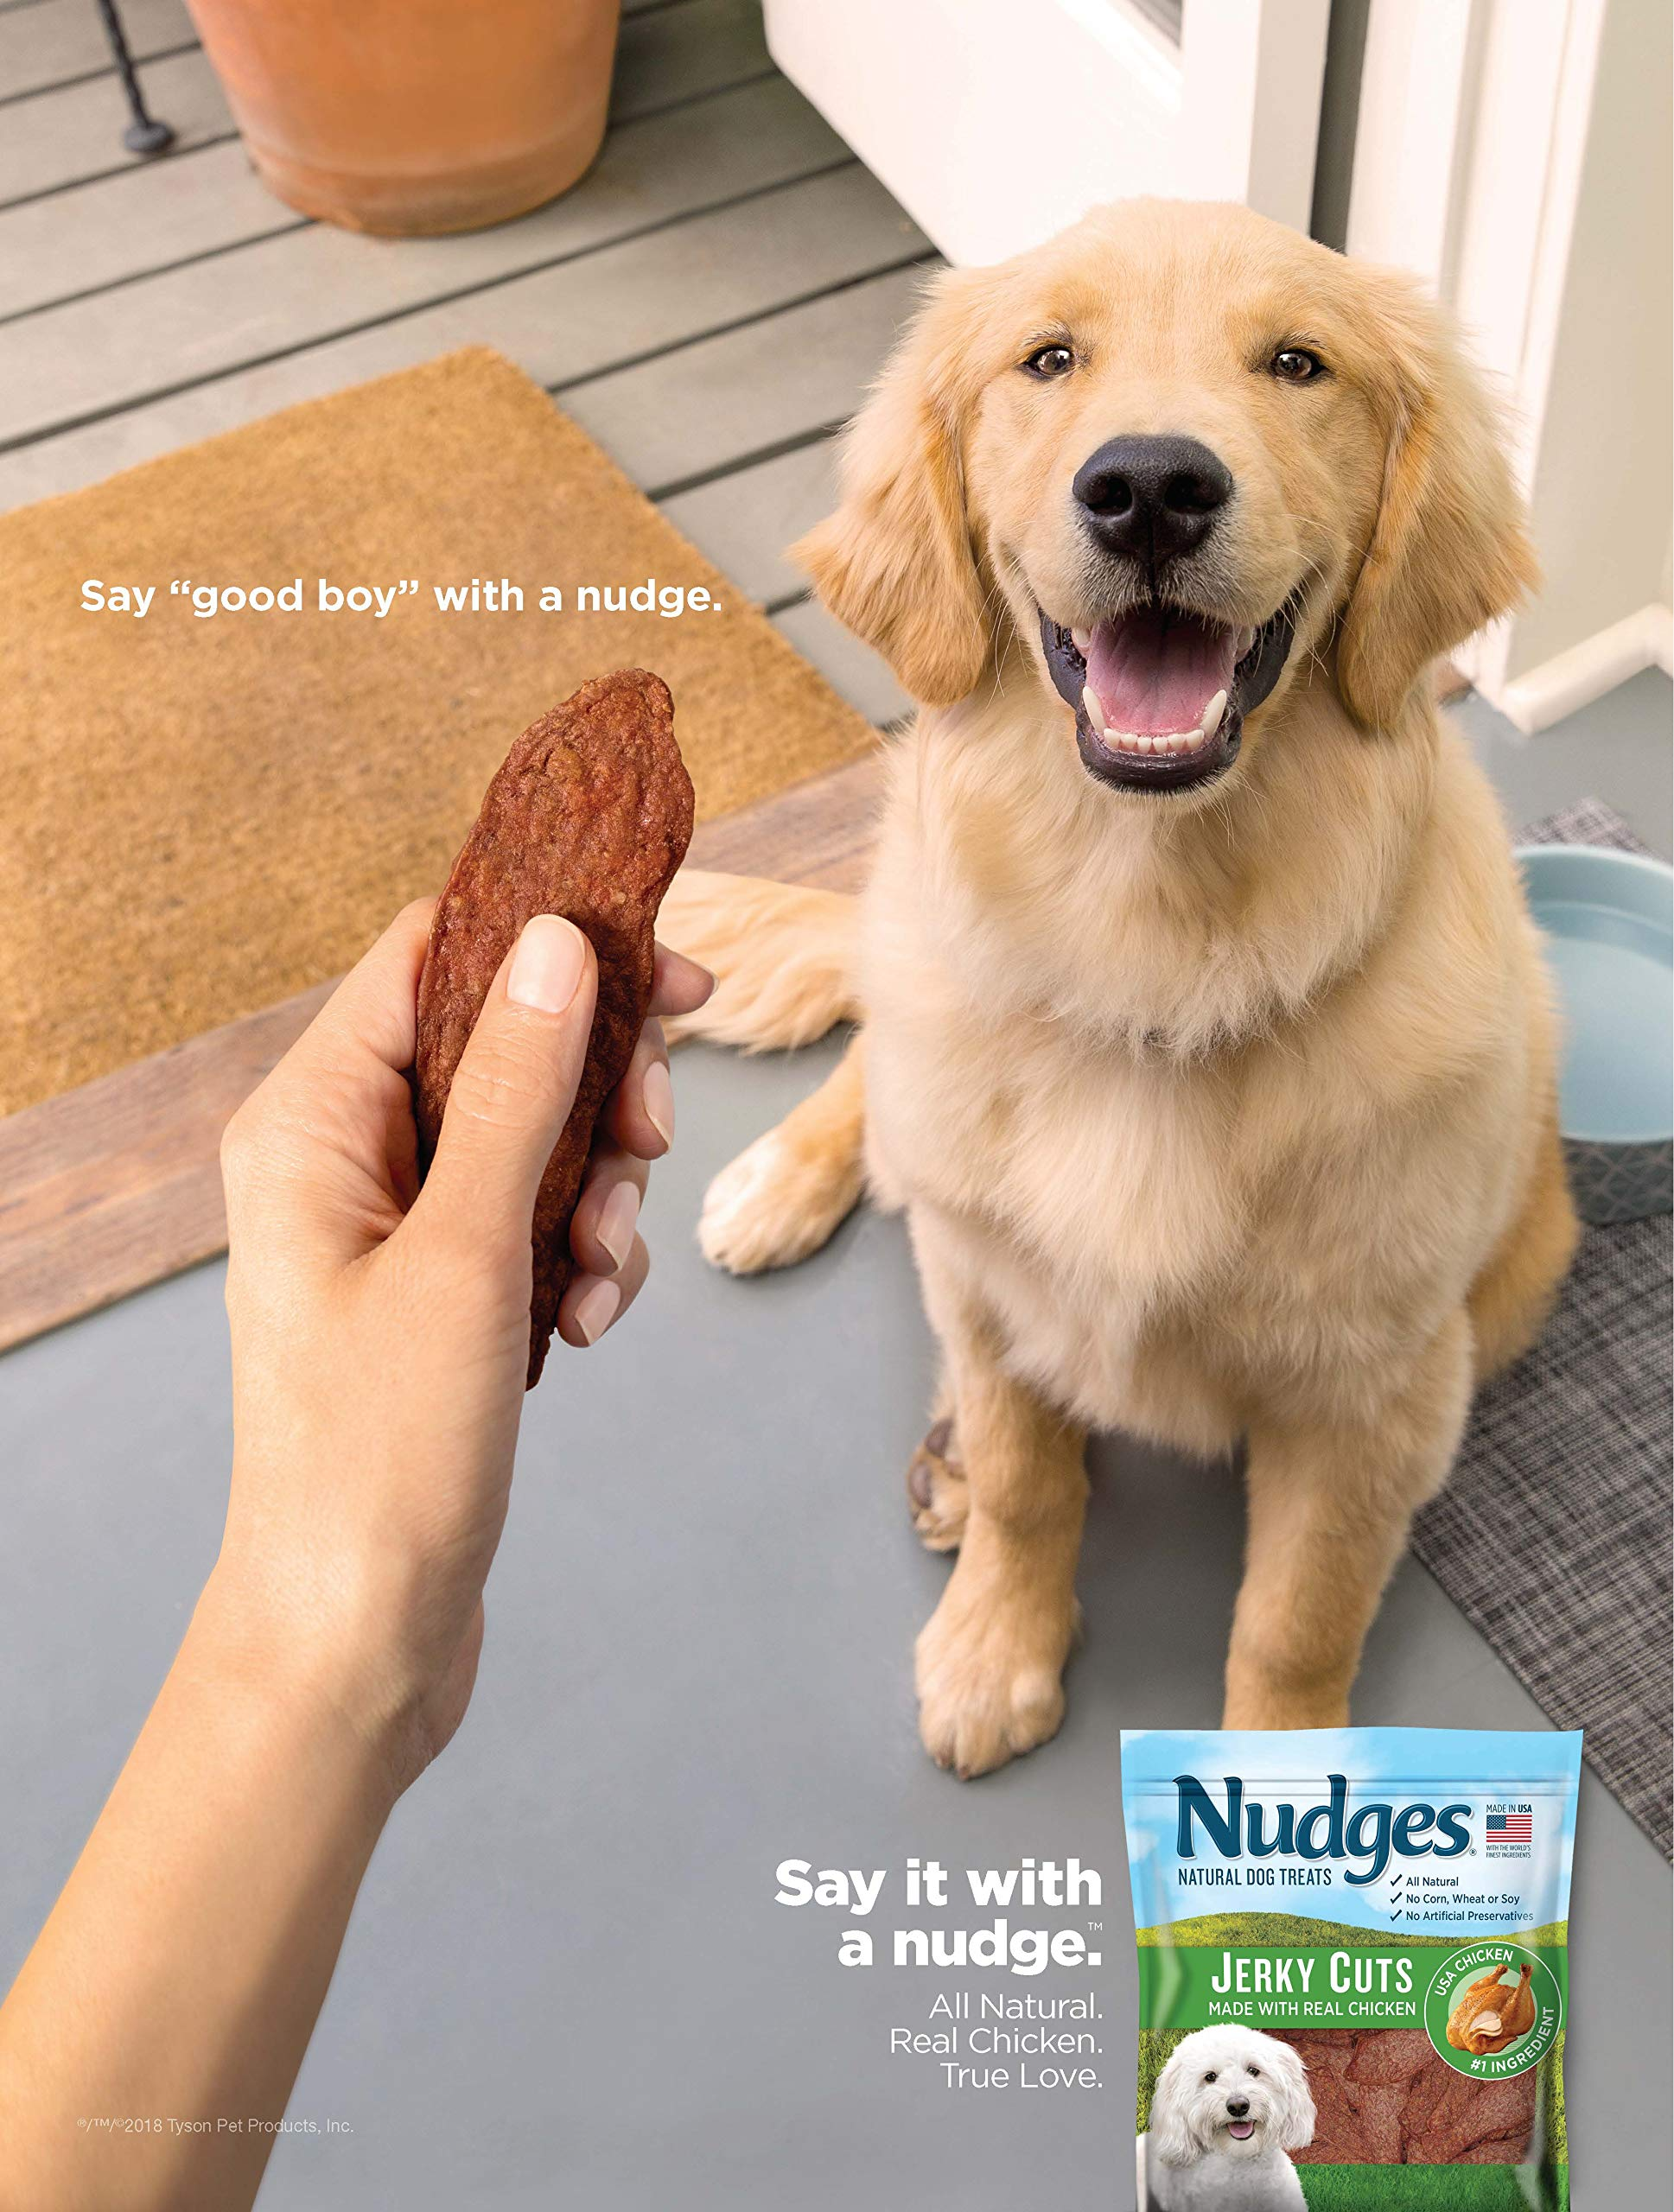 Nudges Chicken Grillers Dog Treats, 18 oz